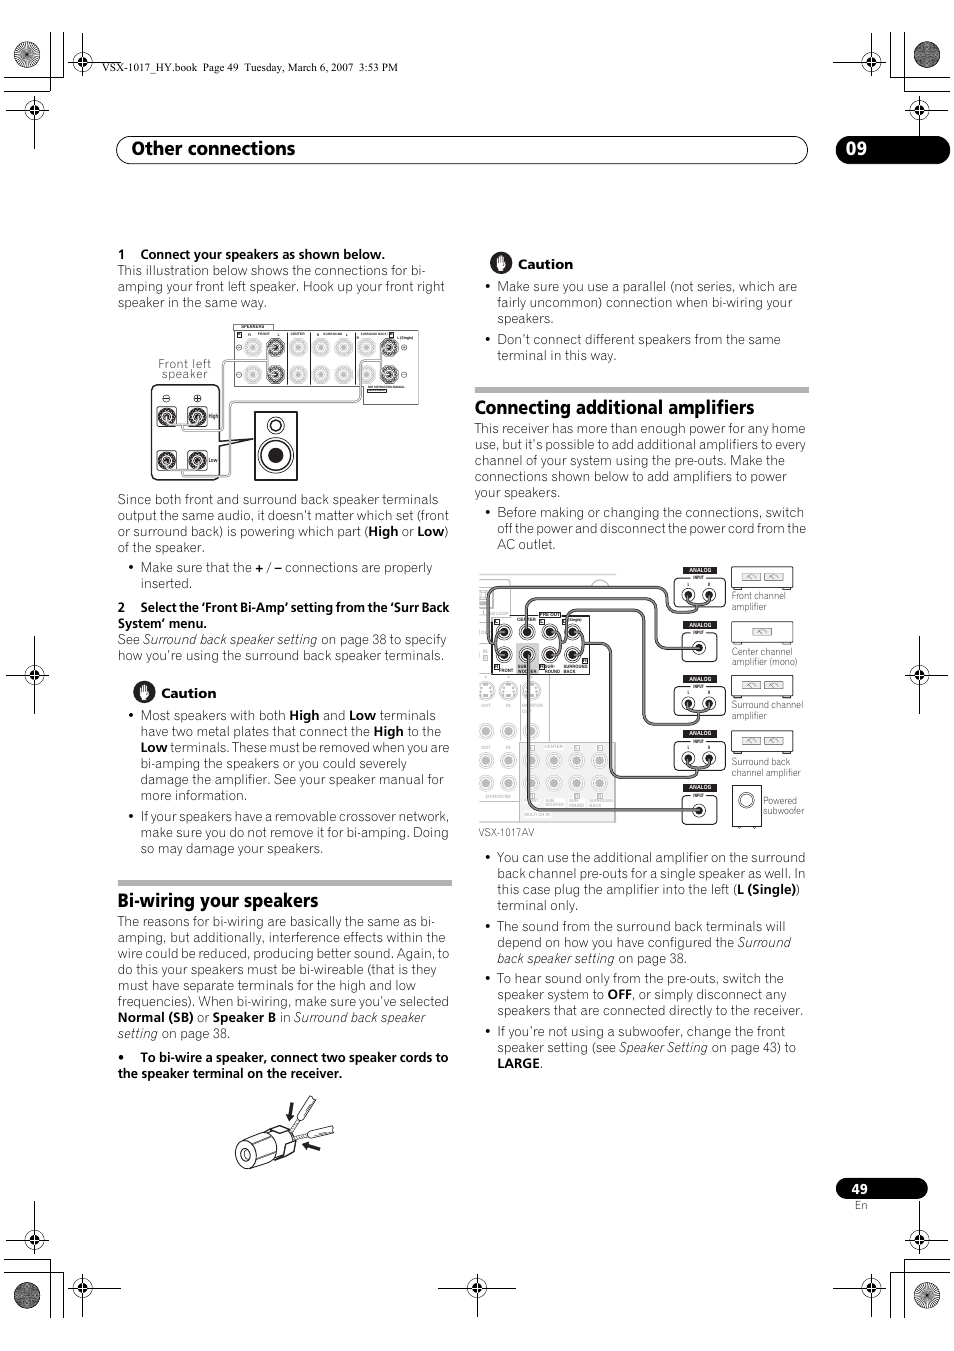 Wiring Your Home For Speakers Other Connections 09 Bi Connecting Additional Amplifiers Pioneer Vsx 1017av K User Manual Page 49 72